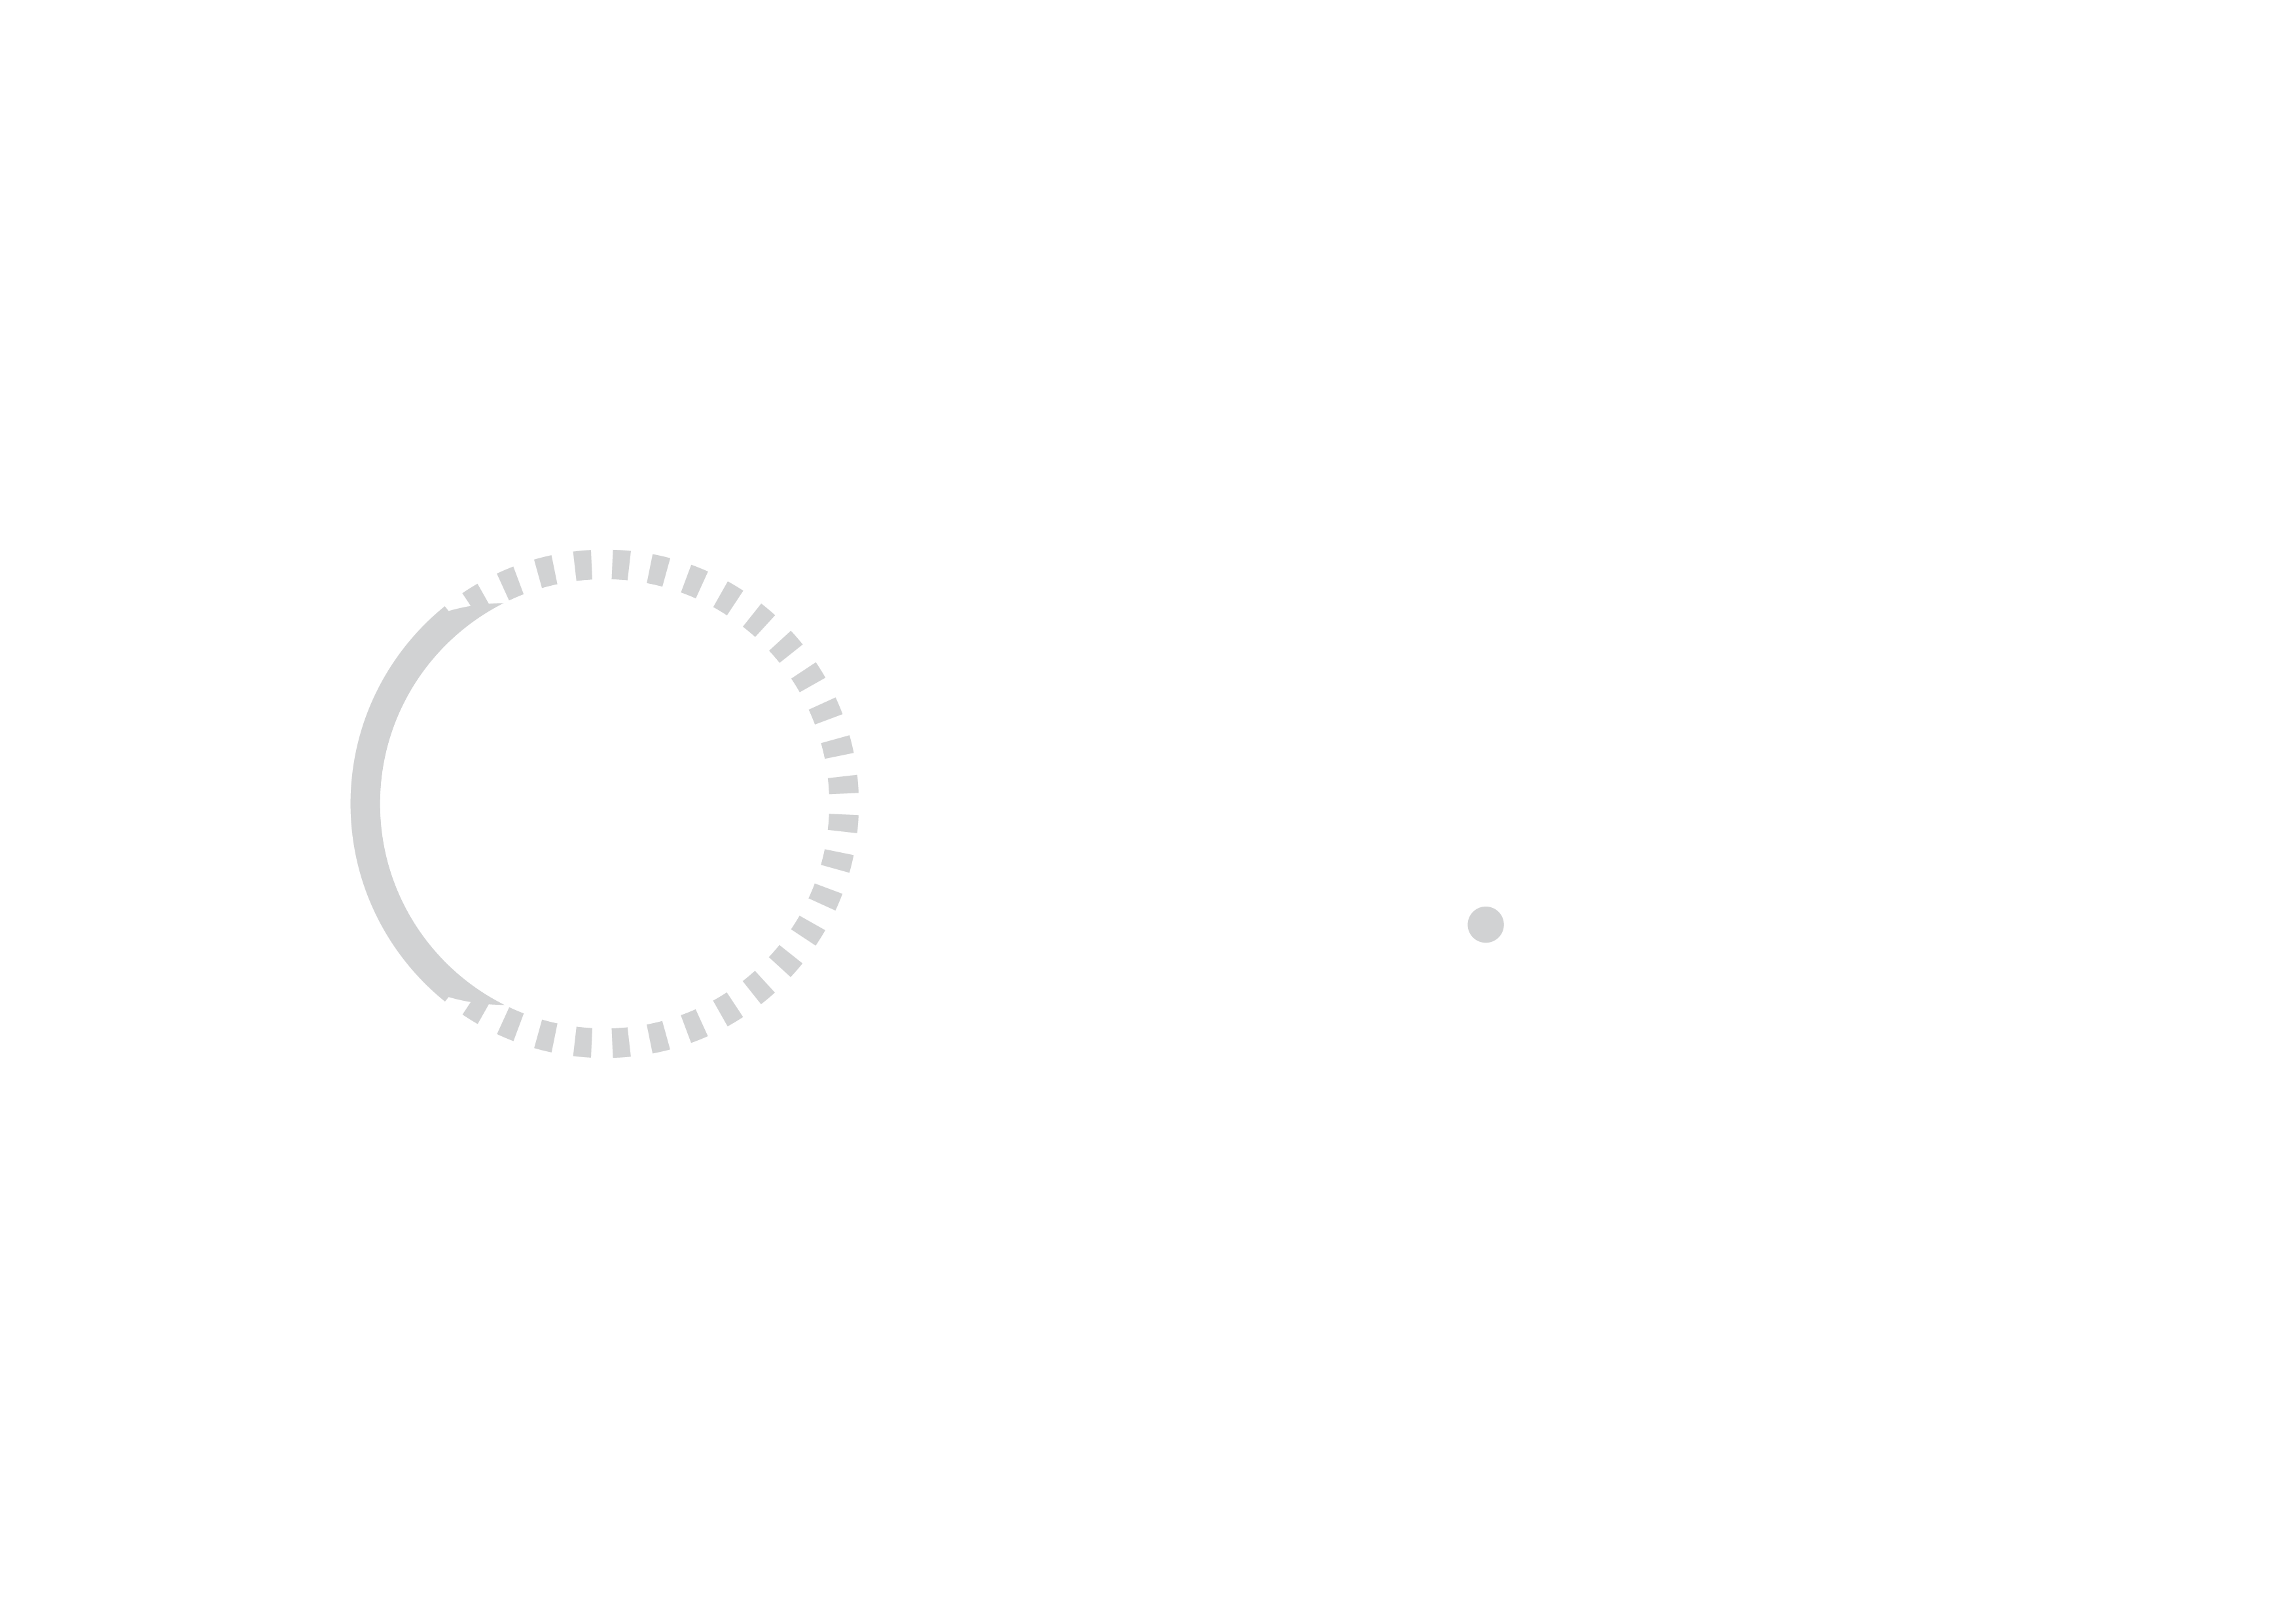 Tire Industry Project